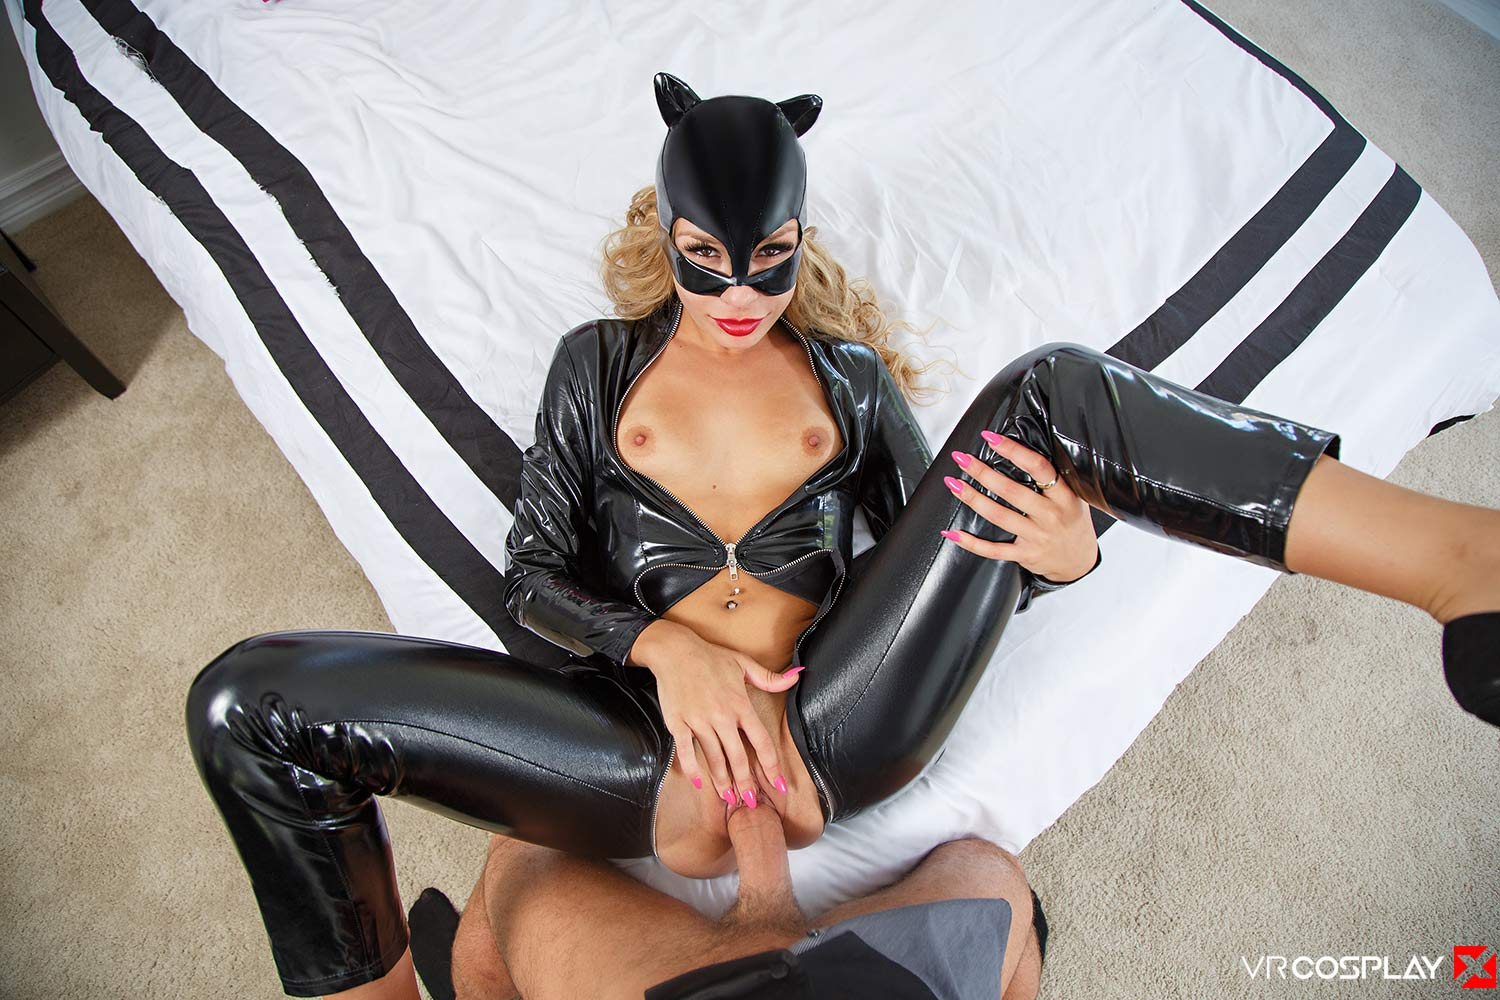 Carmen Caliente as Catwoman Fucked